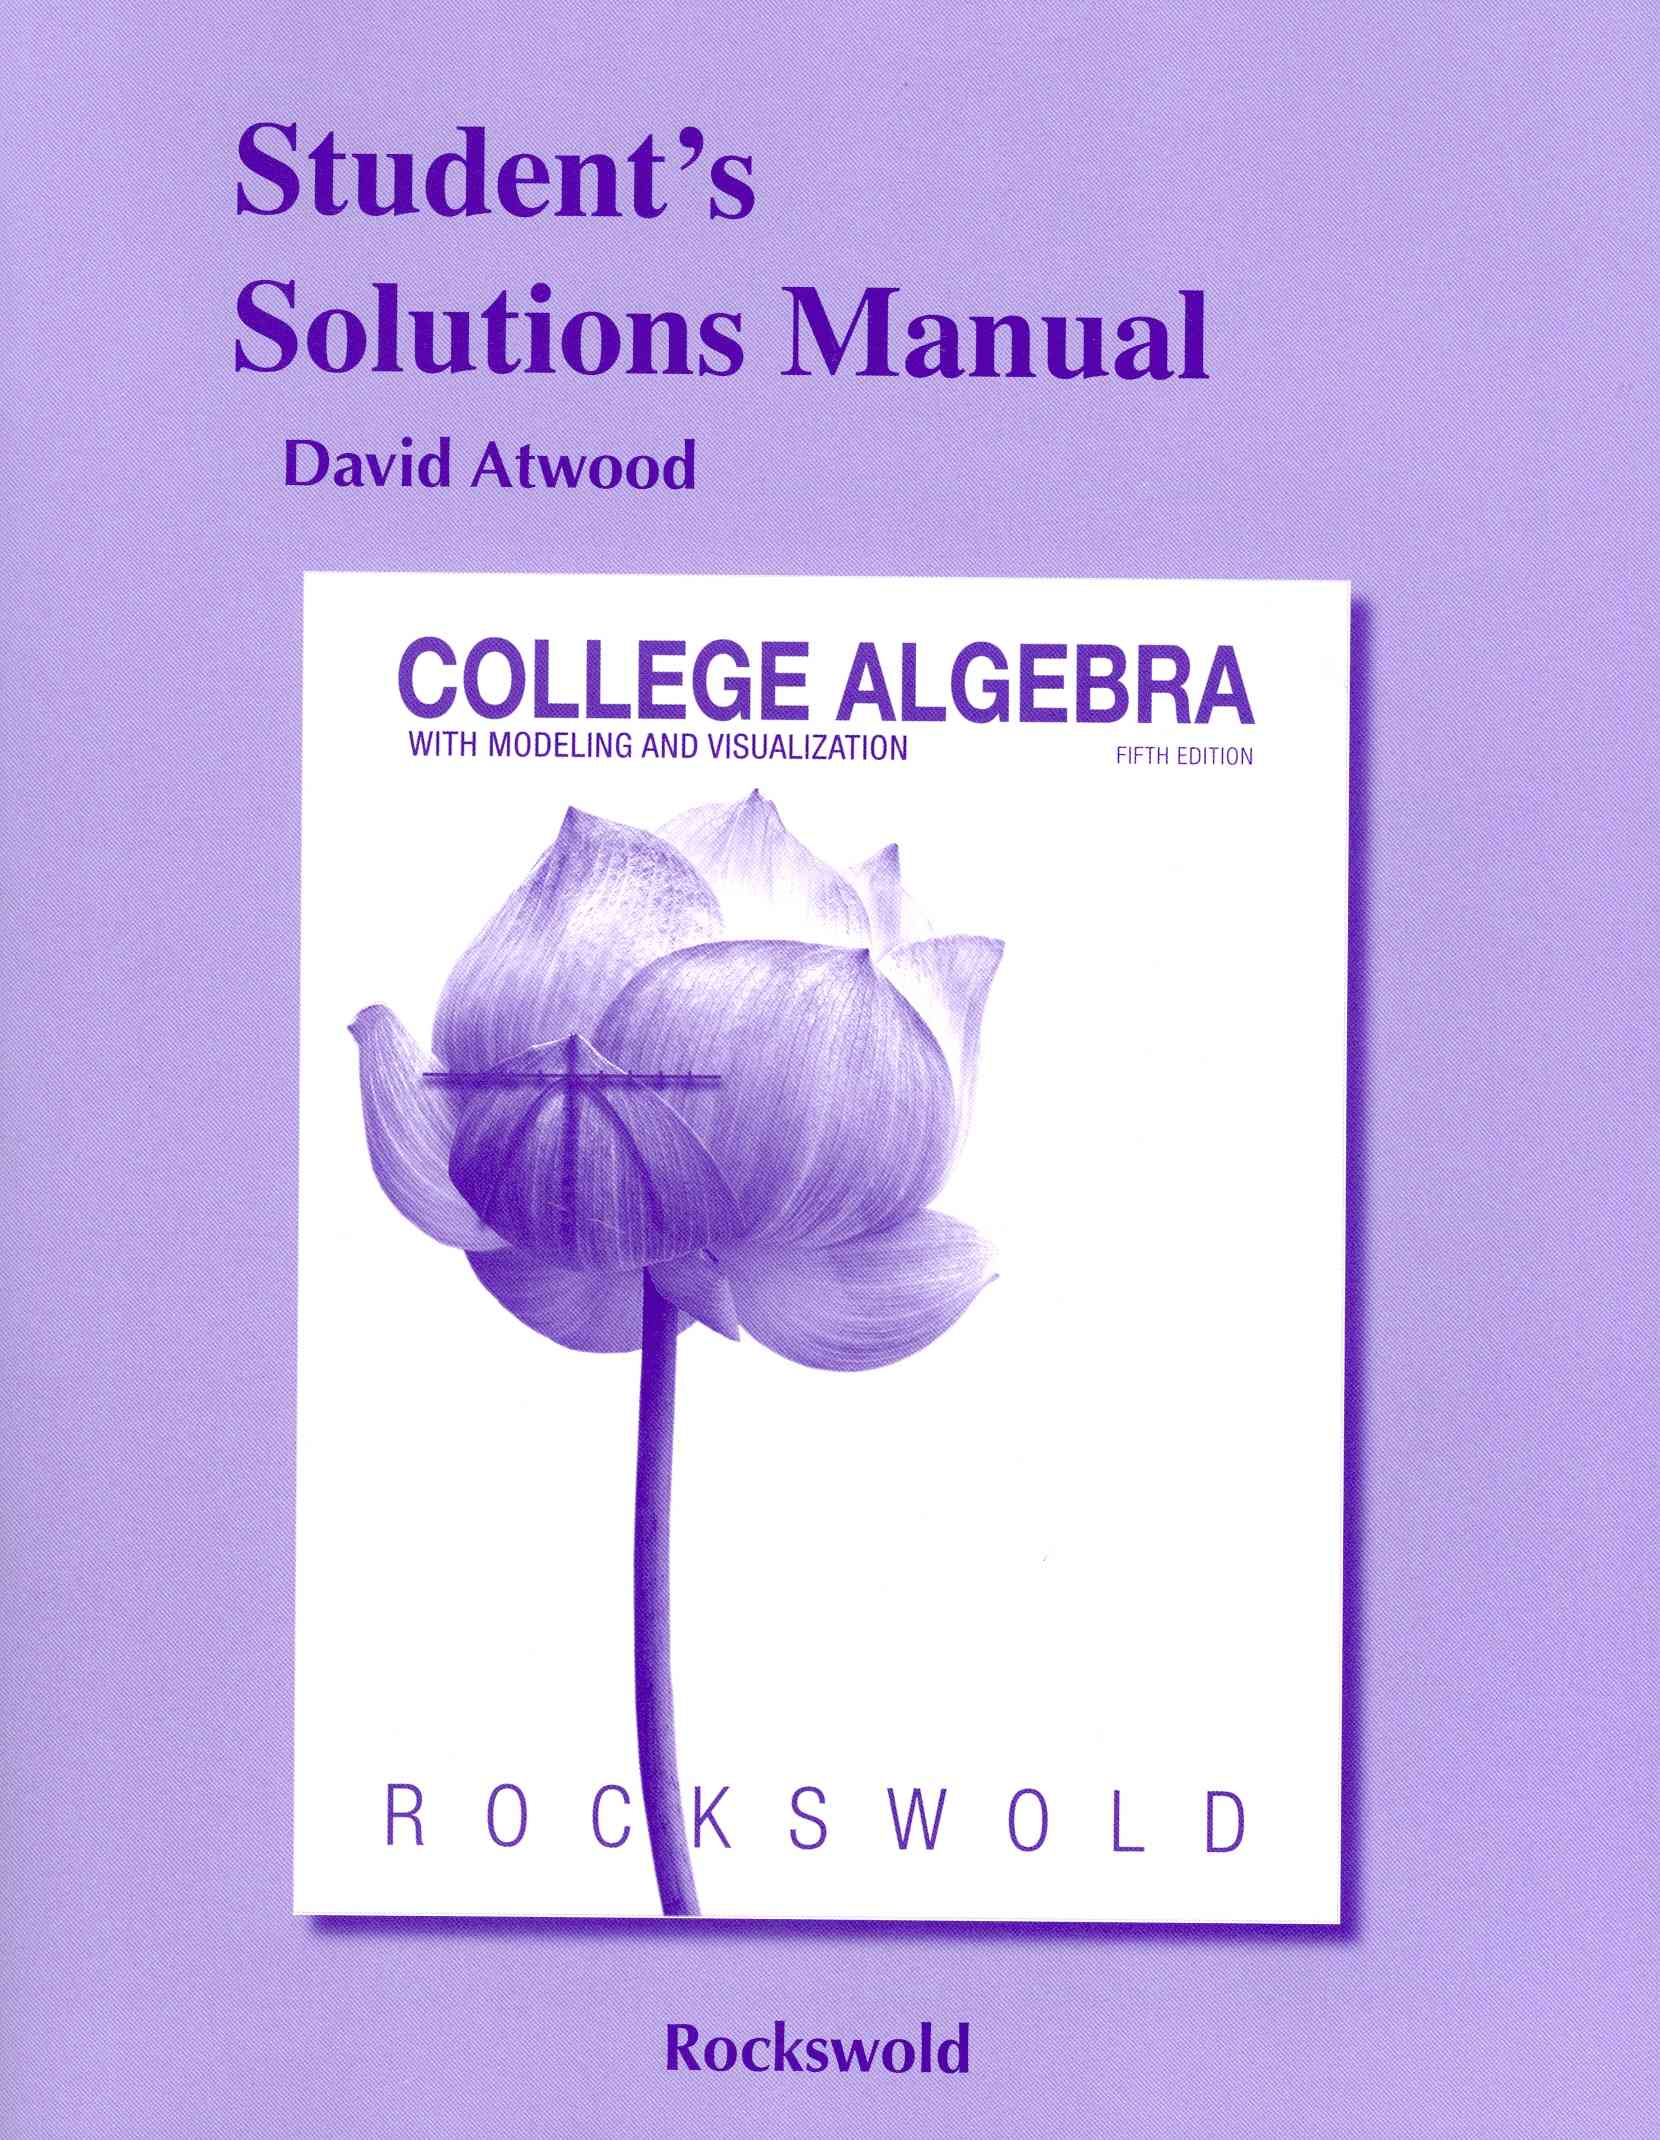 College Algebra With Modeling & Visualization By Rockswold, Gary K.